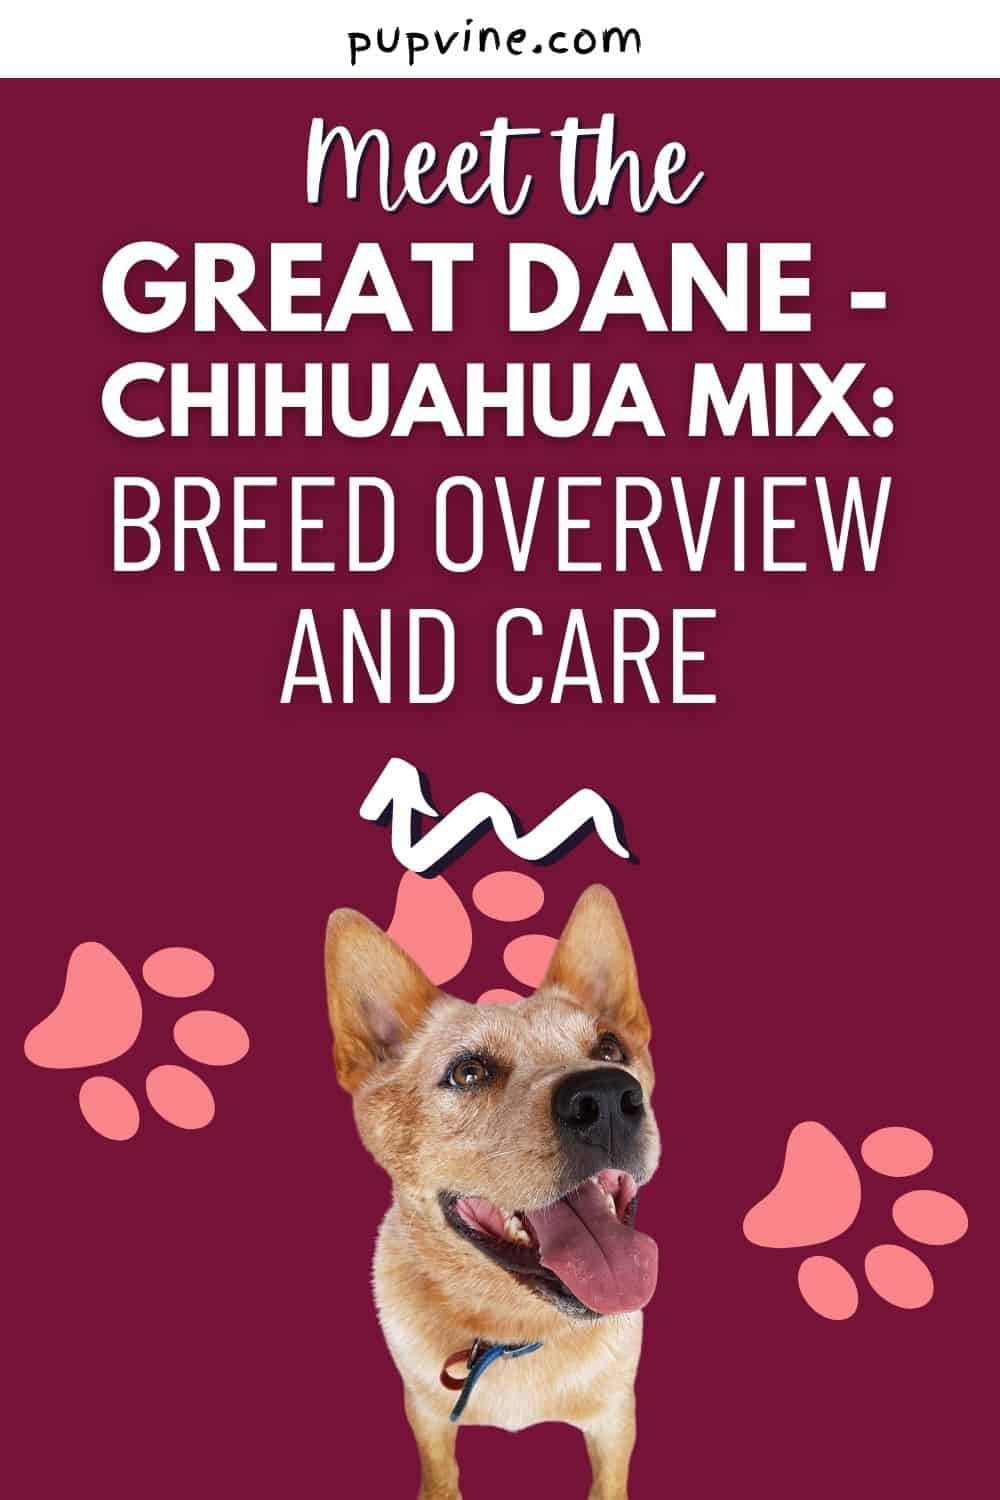 Meet the Great Dane - Chihuahua Mix: Breed Overview and Care